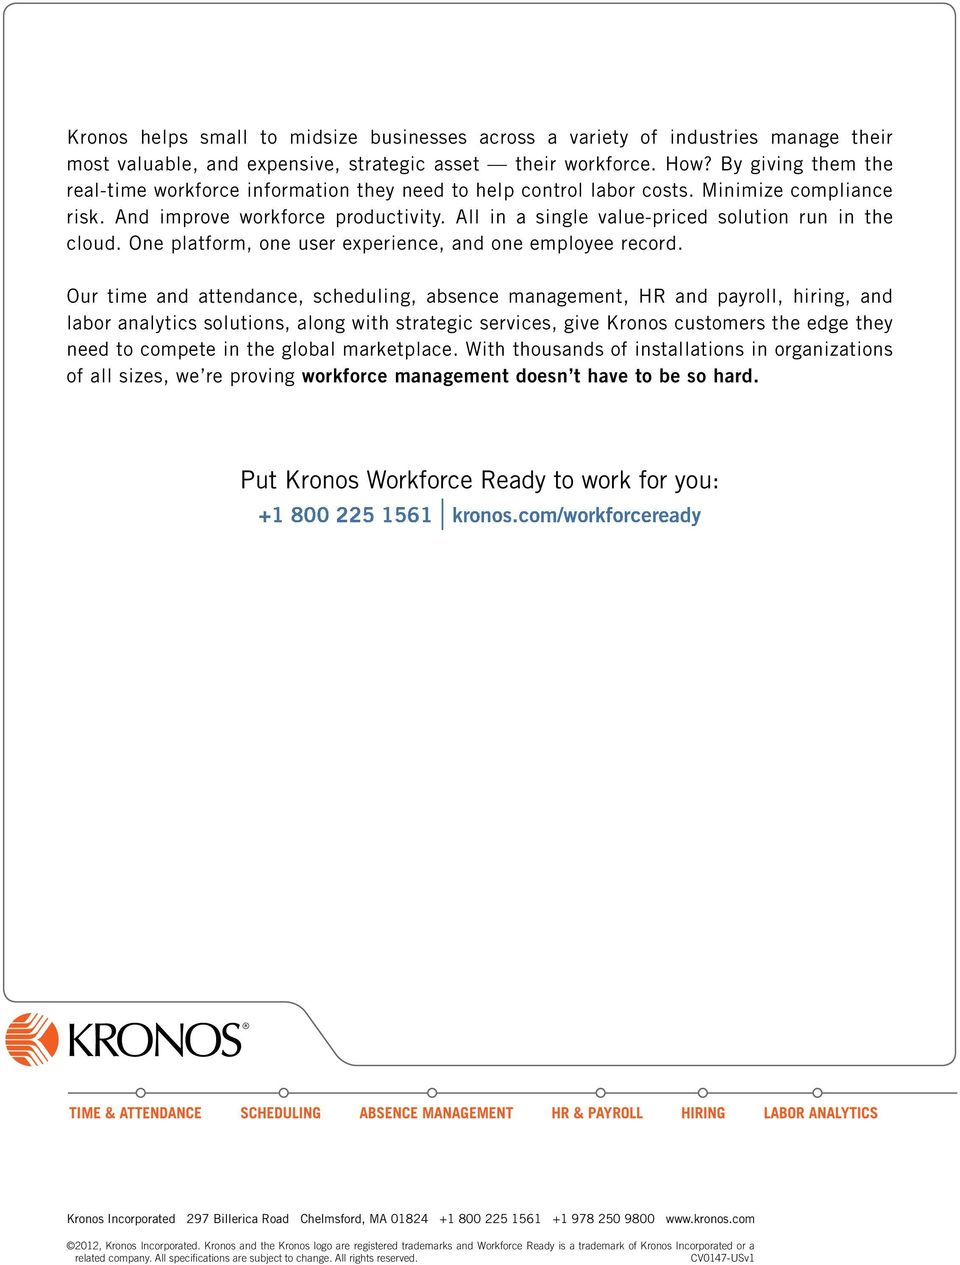 Kronos  Workforce Ready for small and midsize businesses  It